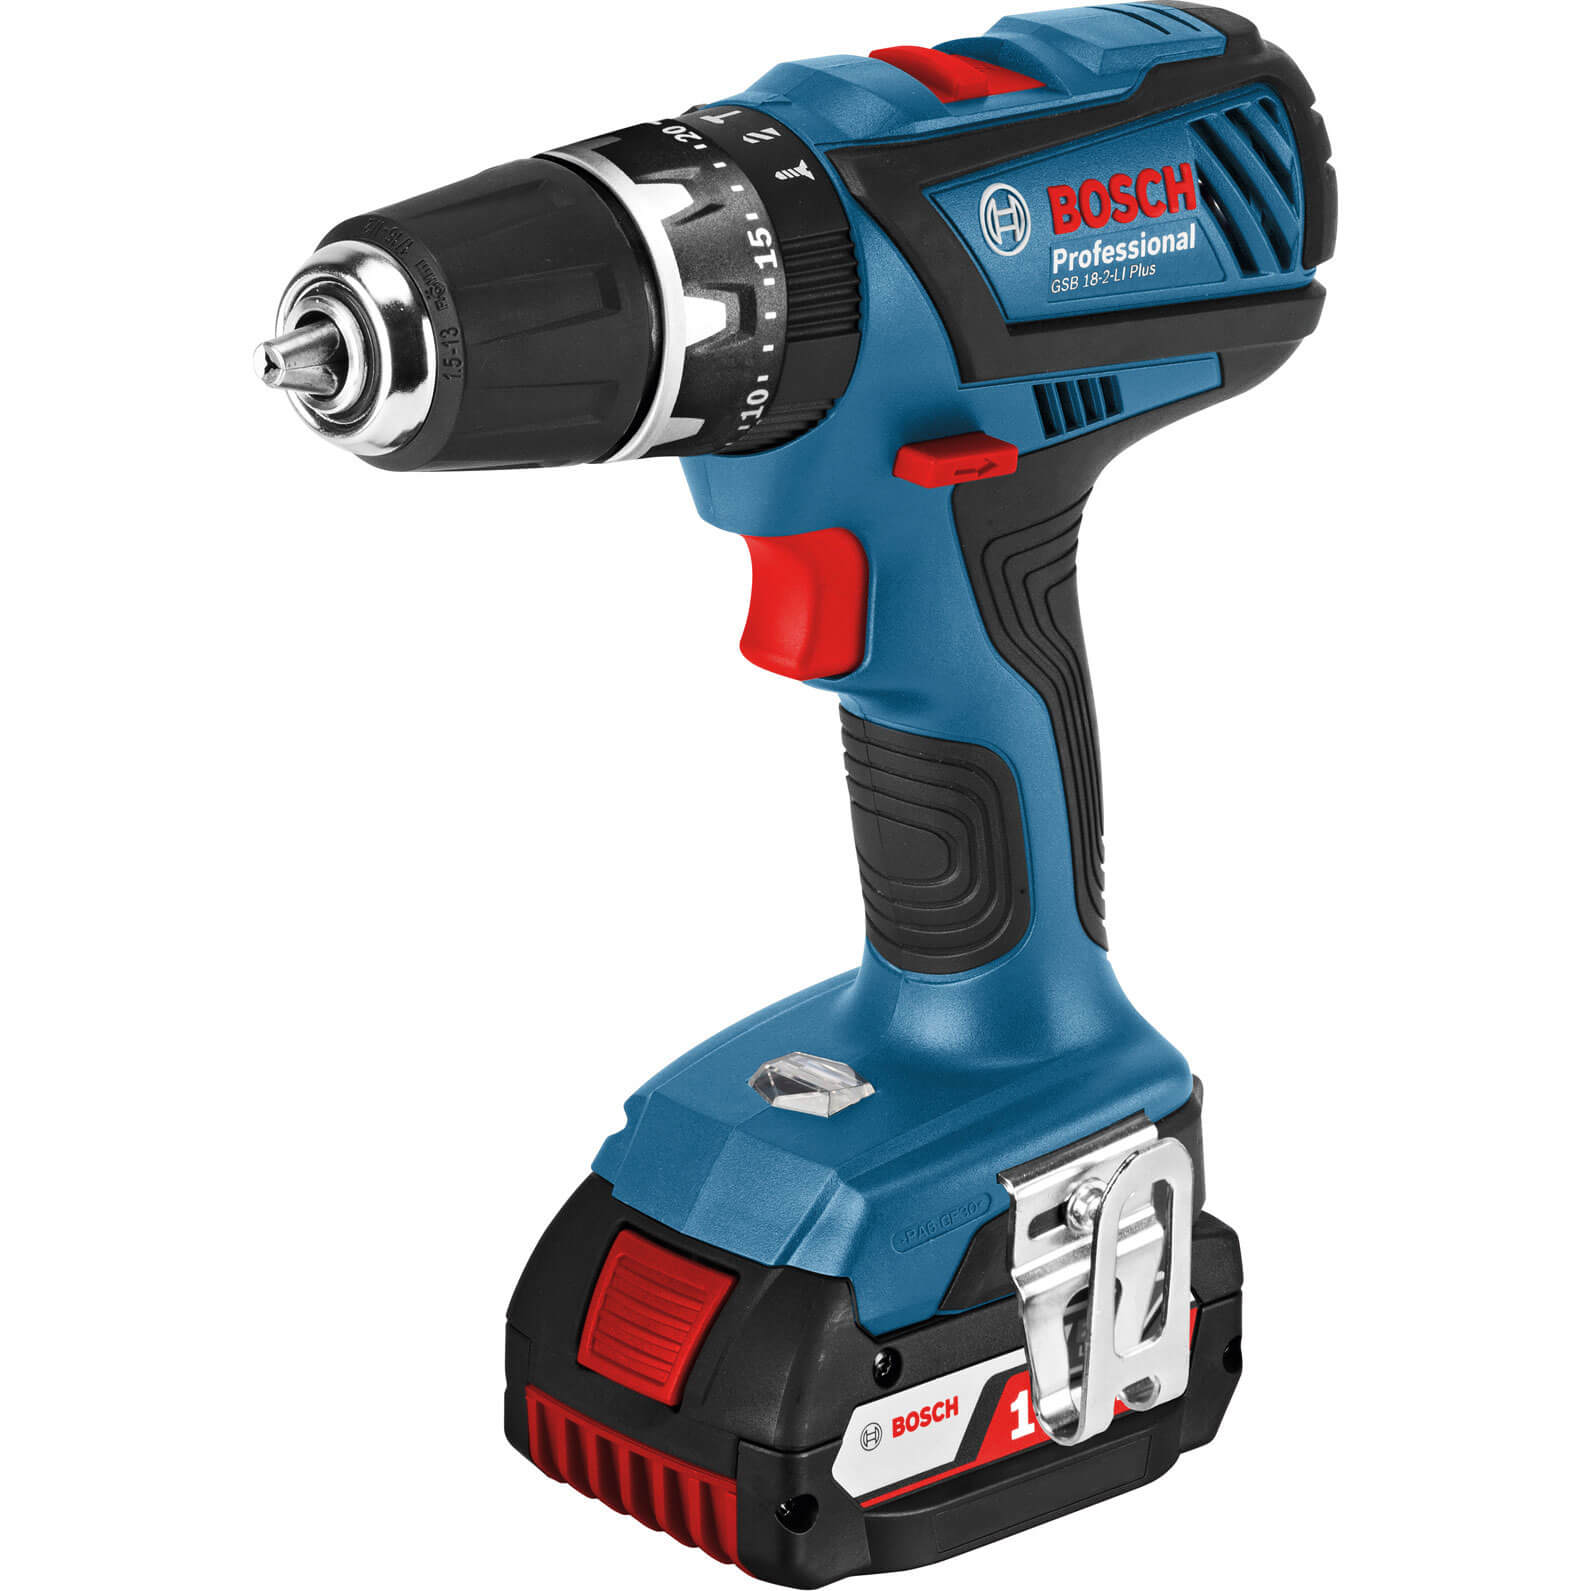 bosch gsb 18 2 li plus 18v cordless combi drill. Black Bedroom Furniture Sets. Home Design Ideas